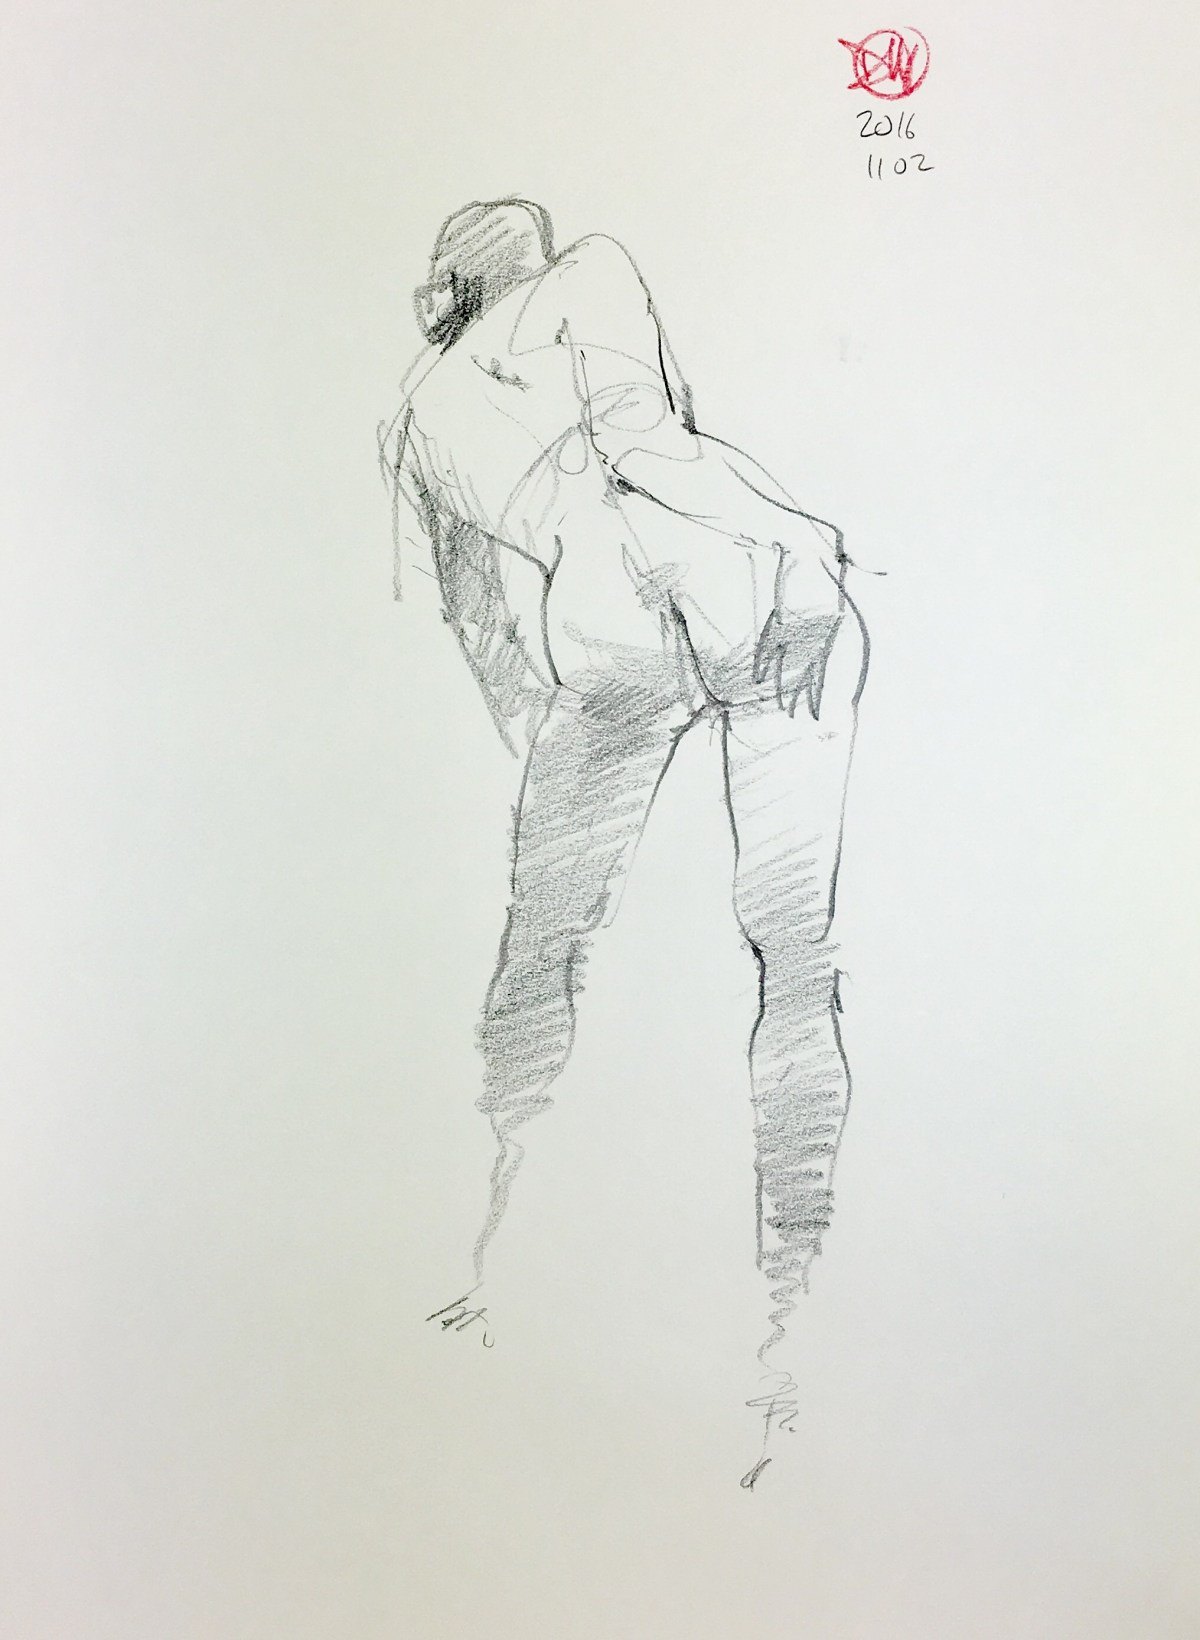 More life drawing from last week